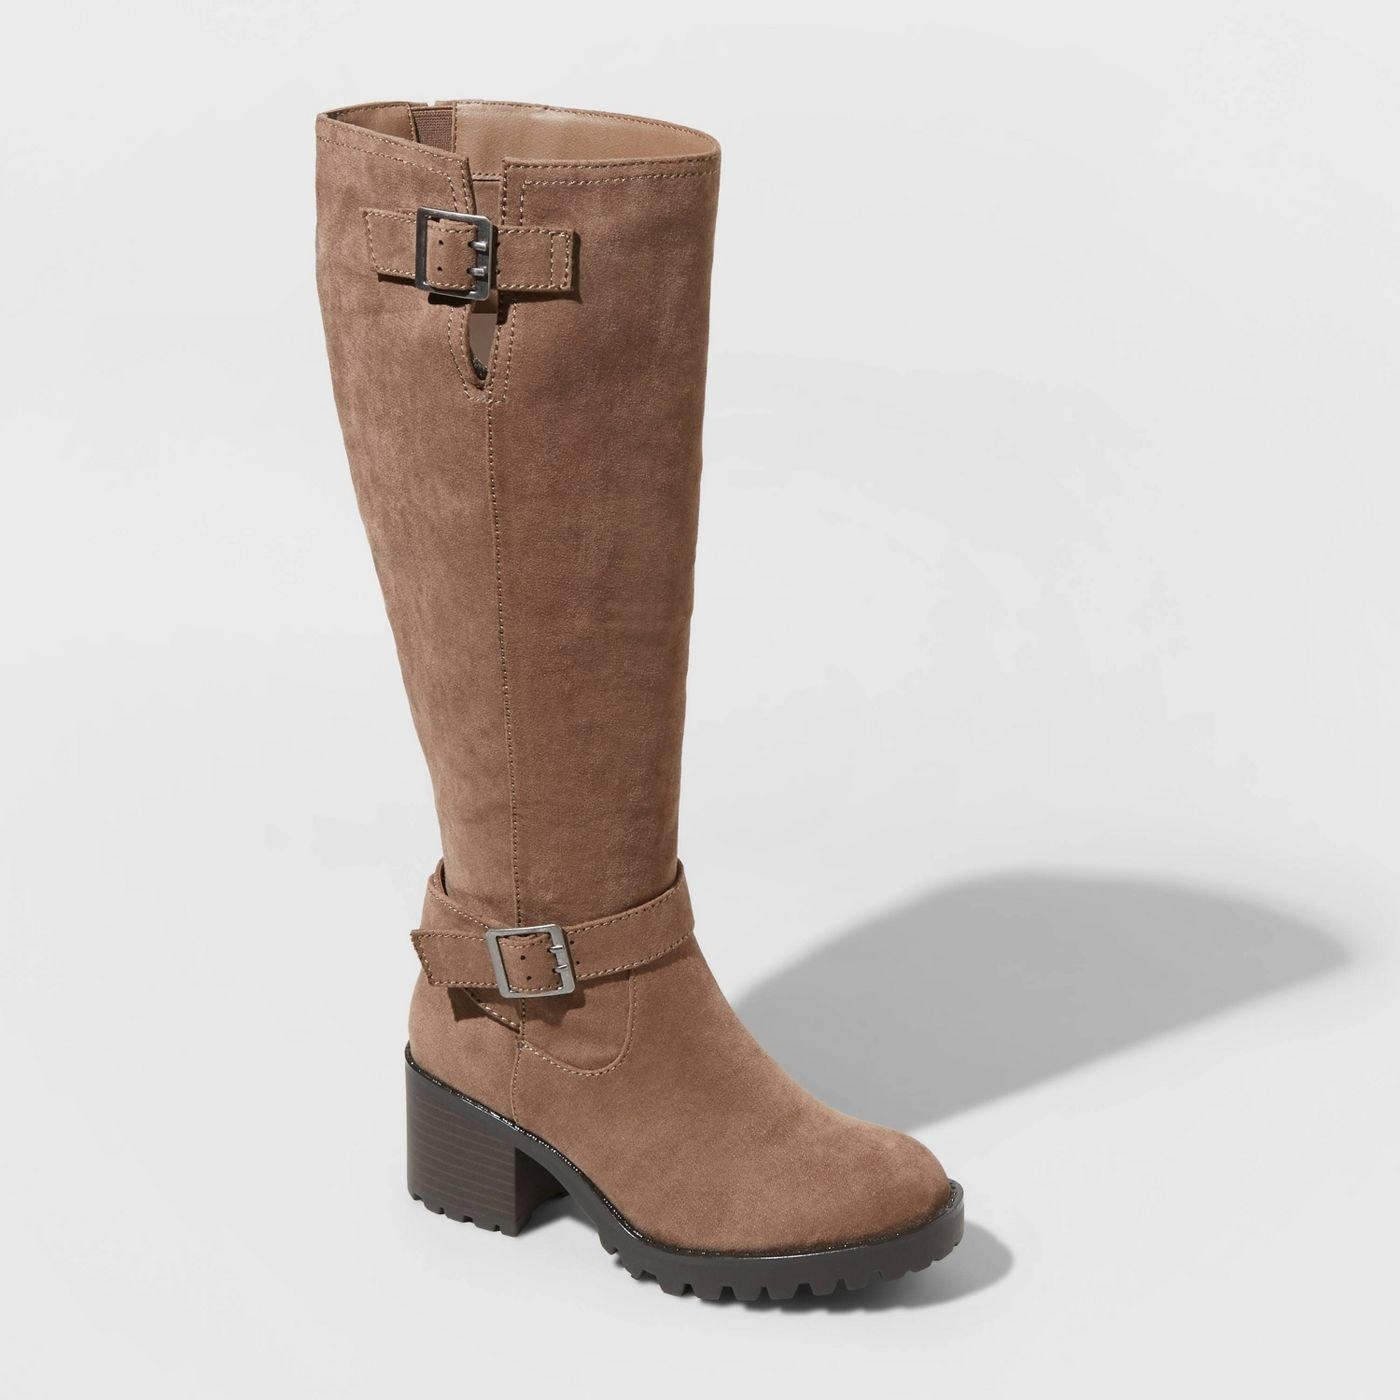 Brown knee high boots with buckles